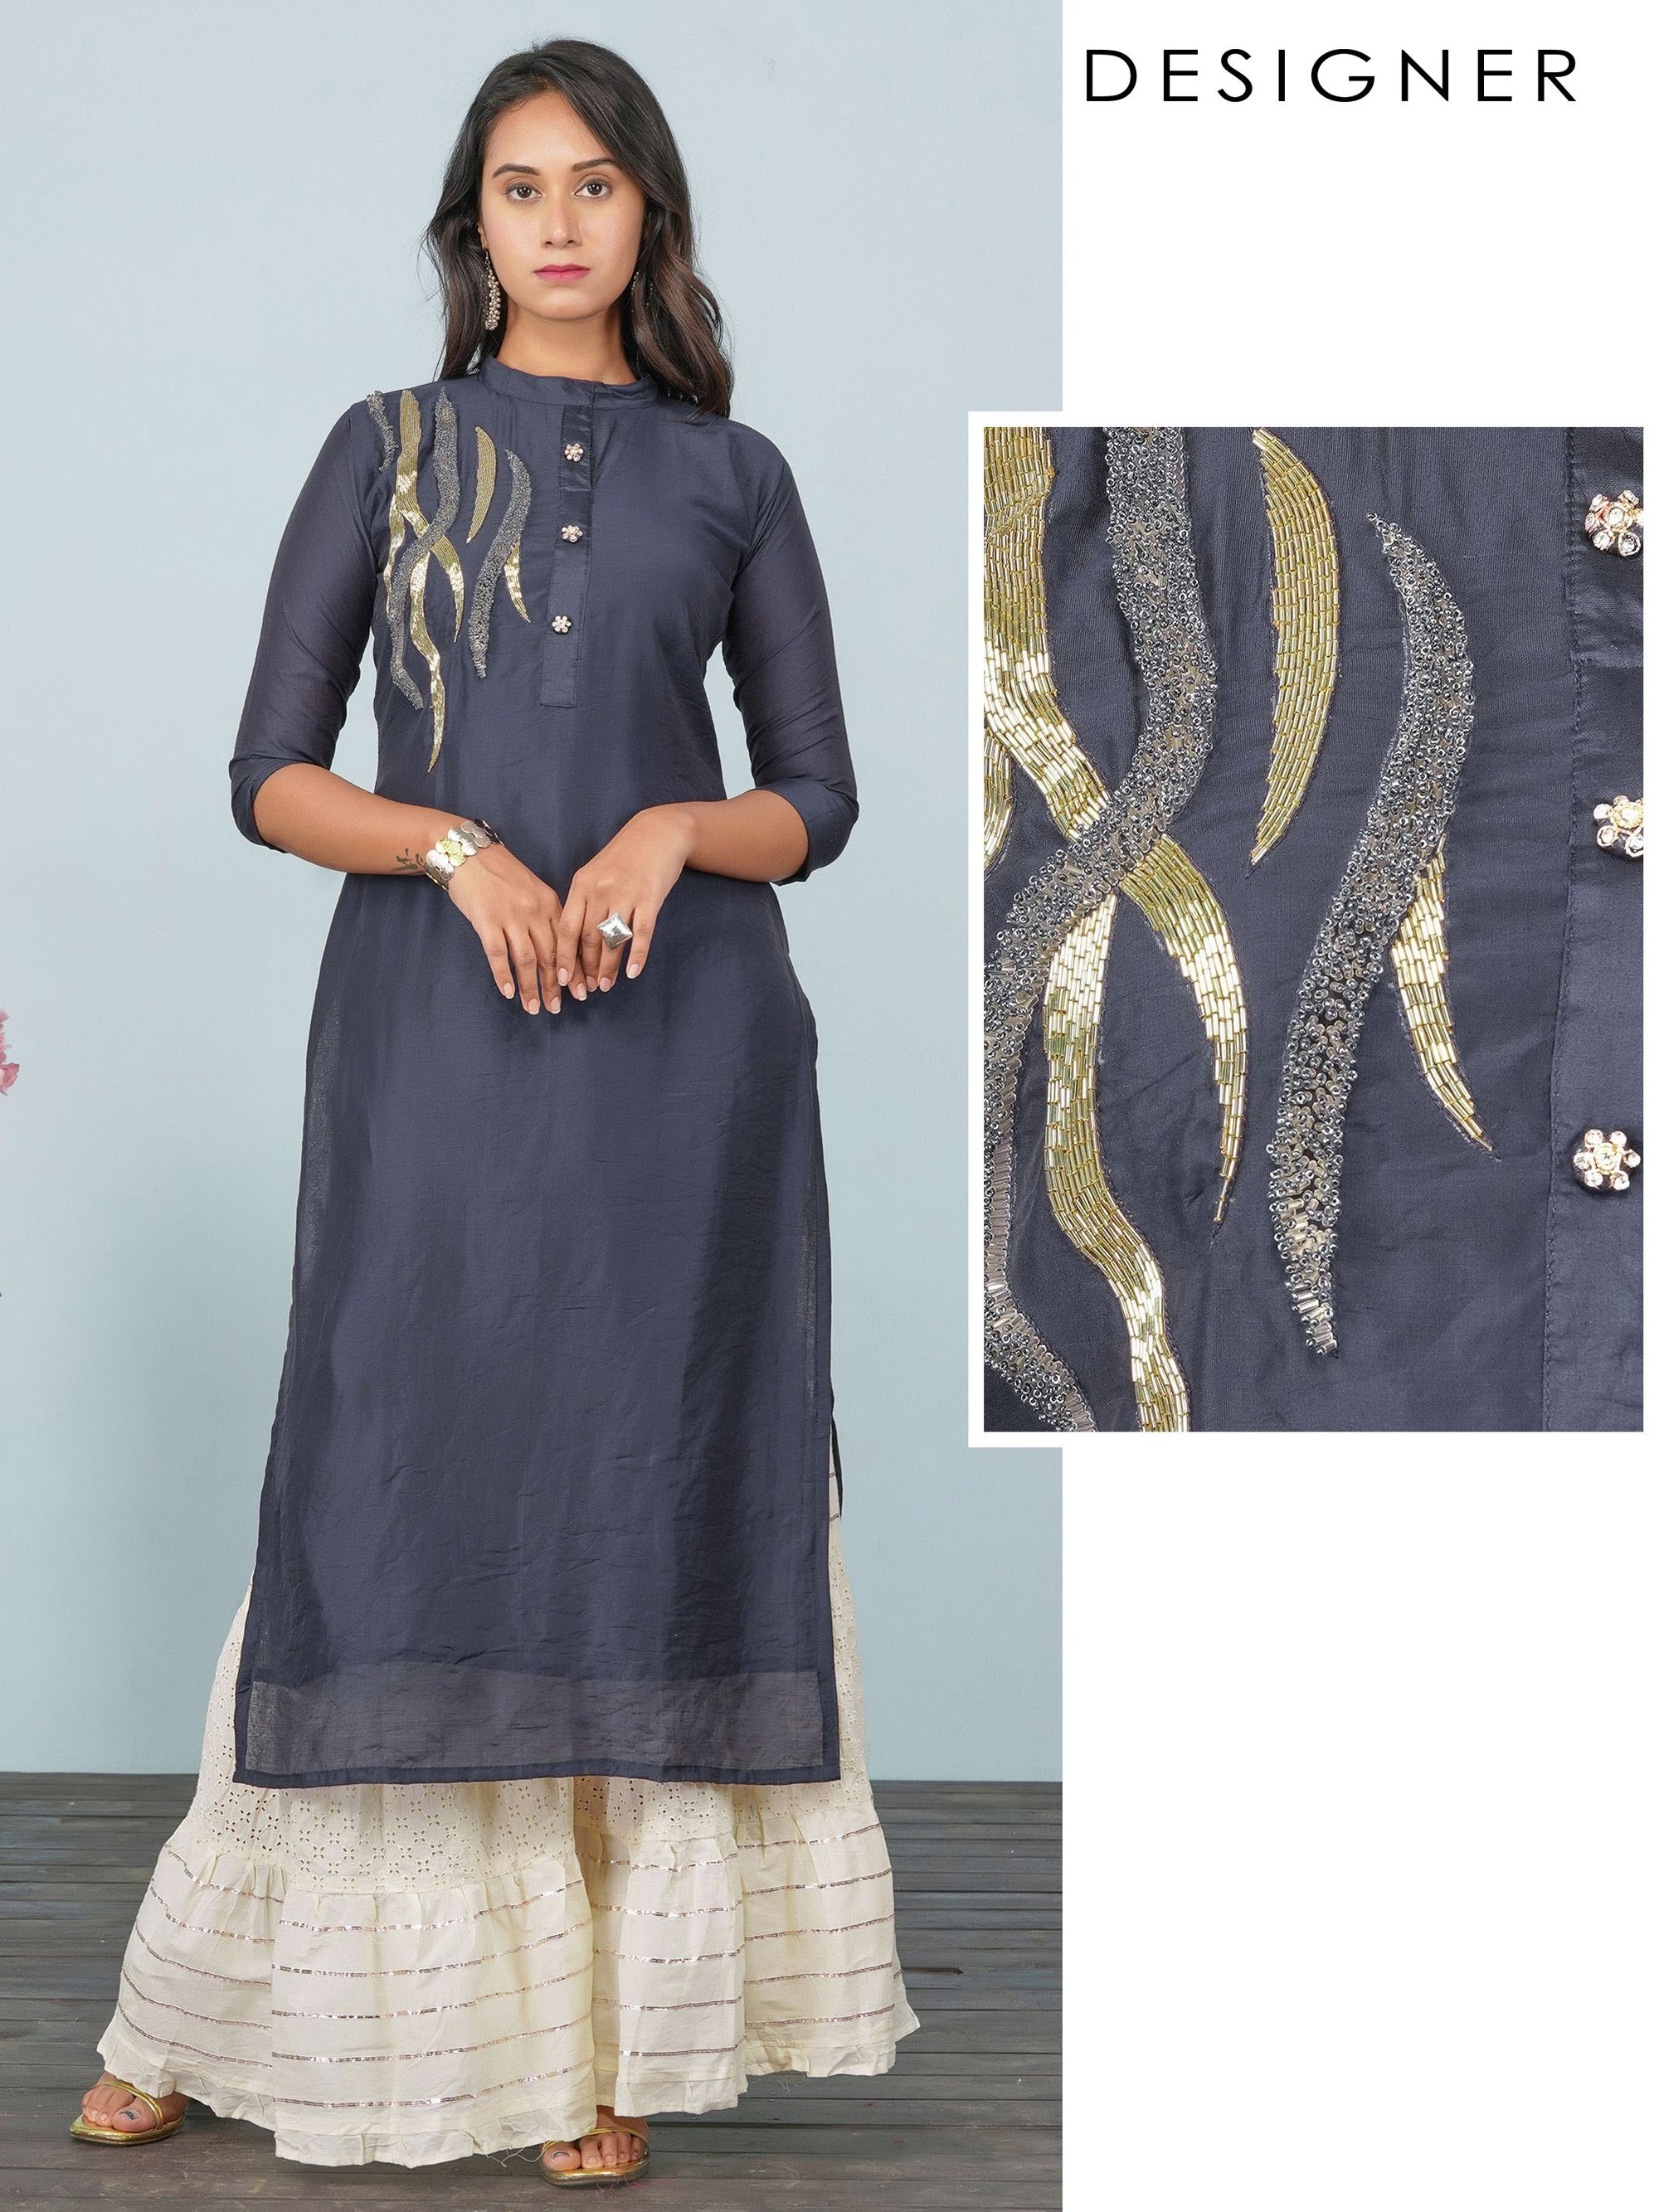 Intense Cutdana & Bead work Detailed Kurti – Navy Blue